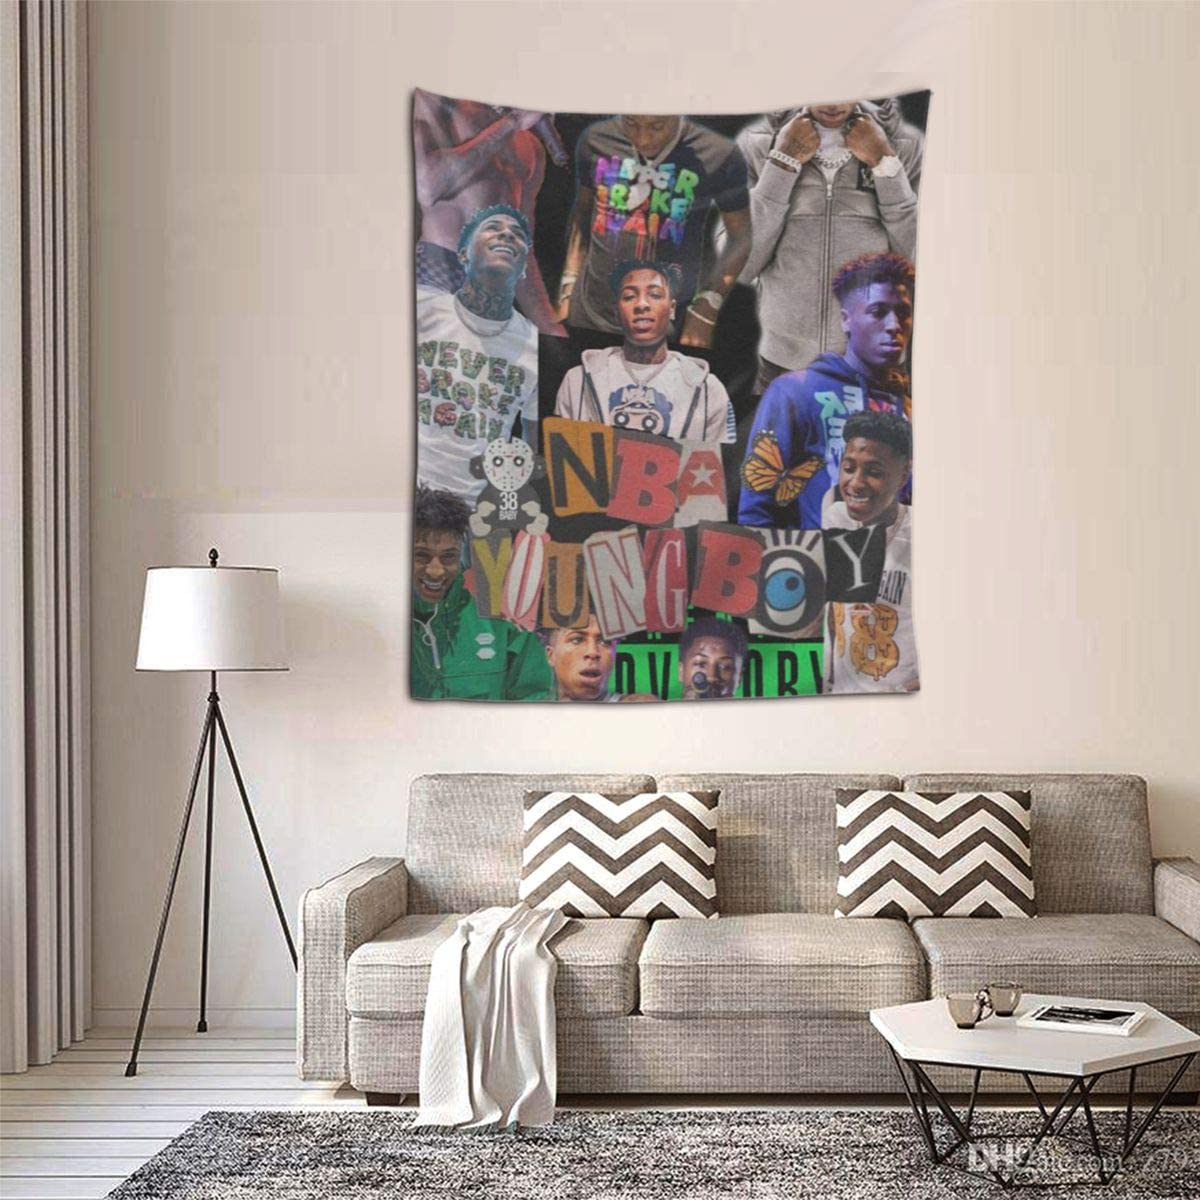 ZEMIOF NBA YoungBoy Tapestry Dorm Decor For Living Room Bedroom 51x60 Inches